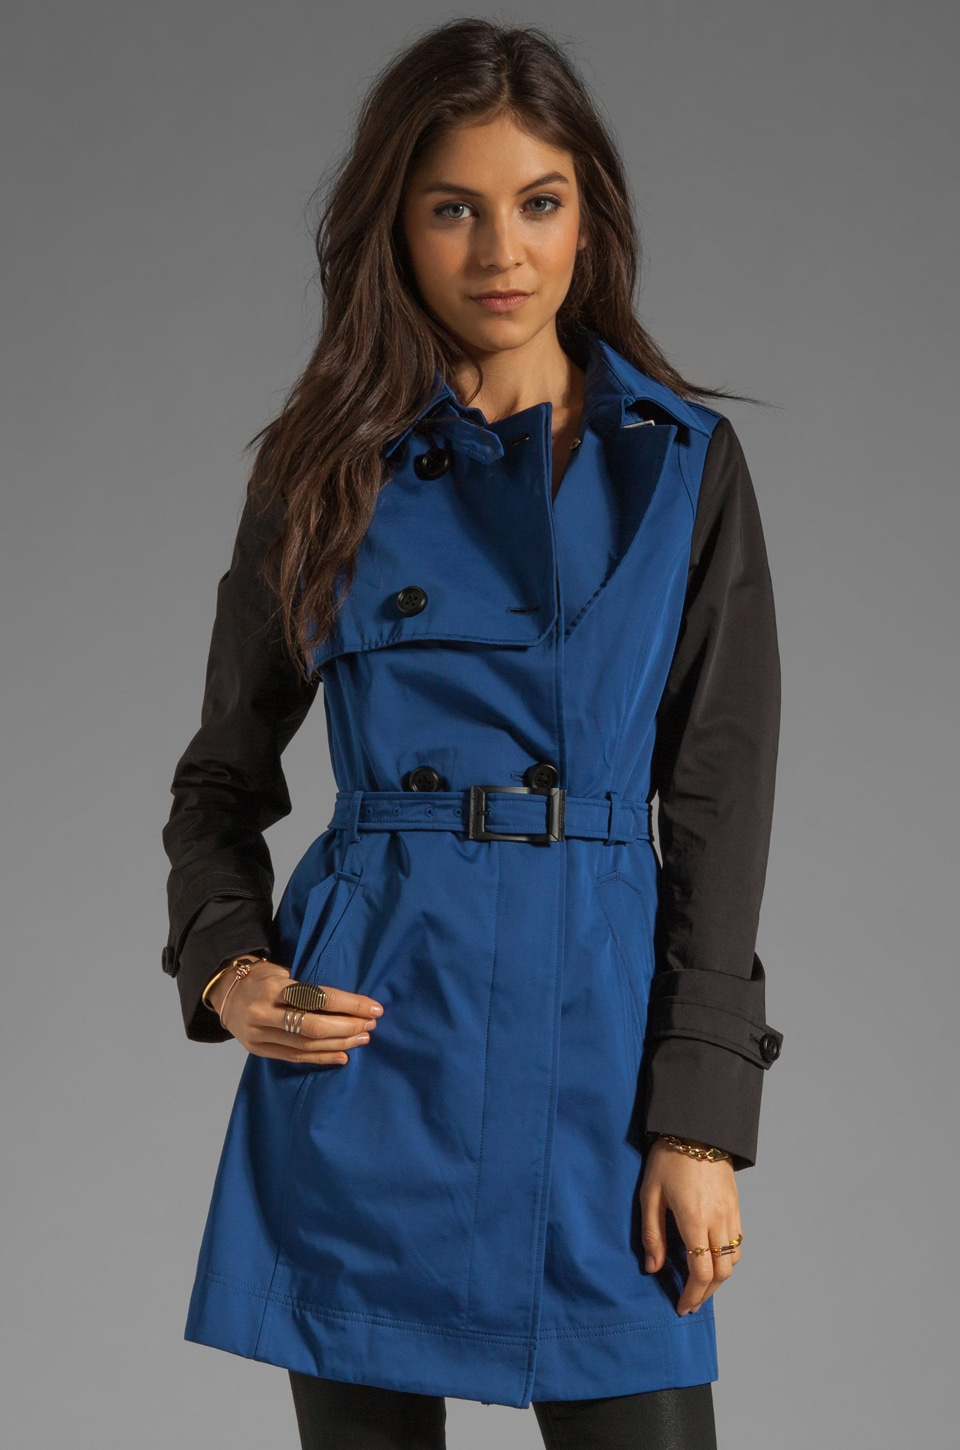 Soia & Kyo Adelle Trench Jacket in Blue